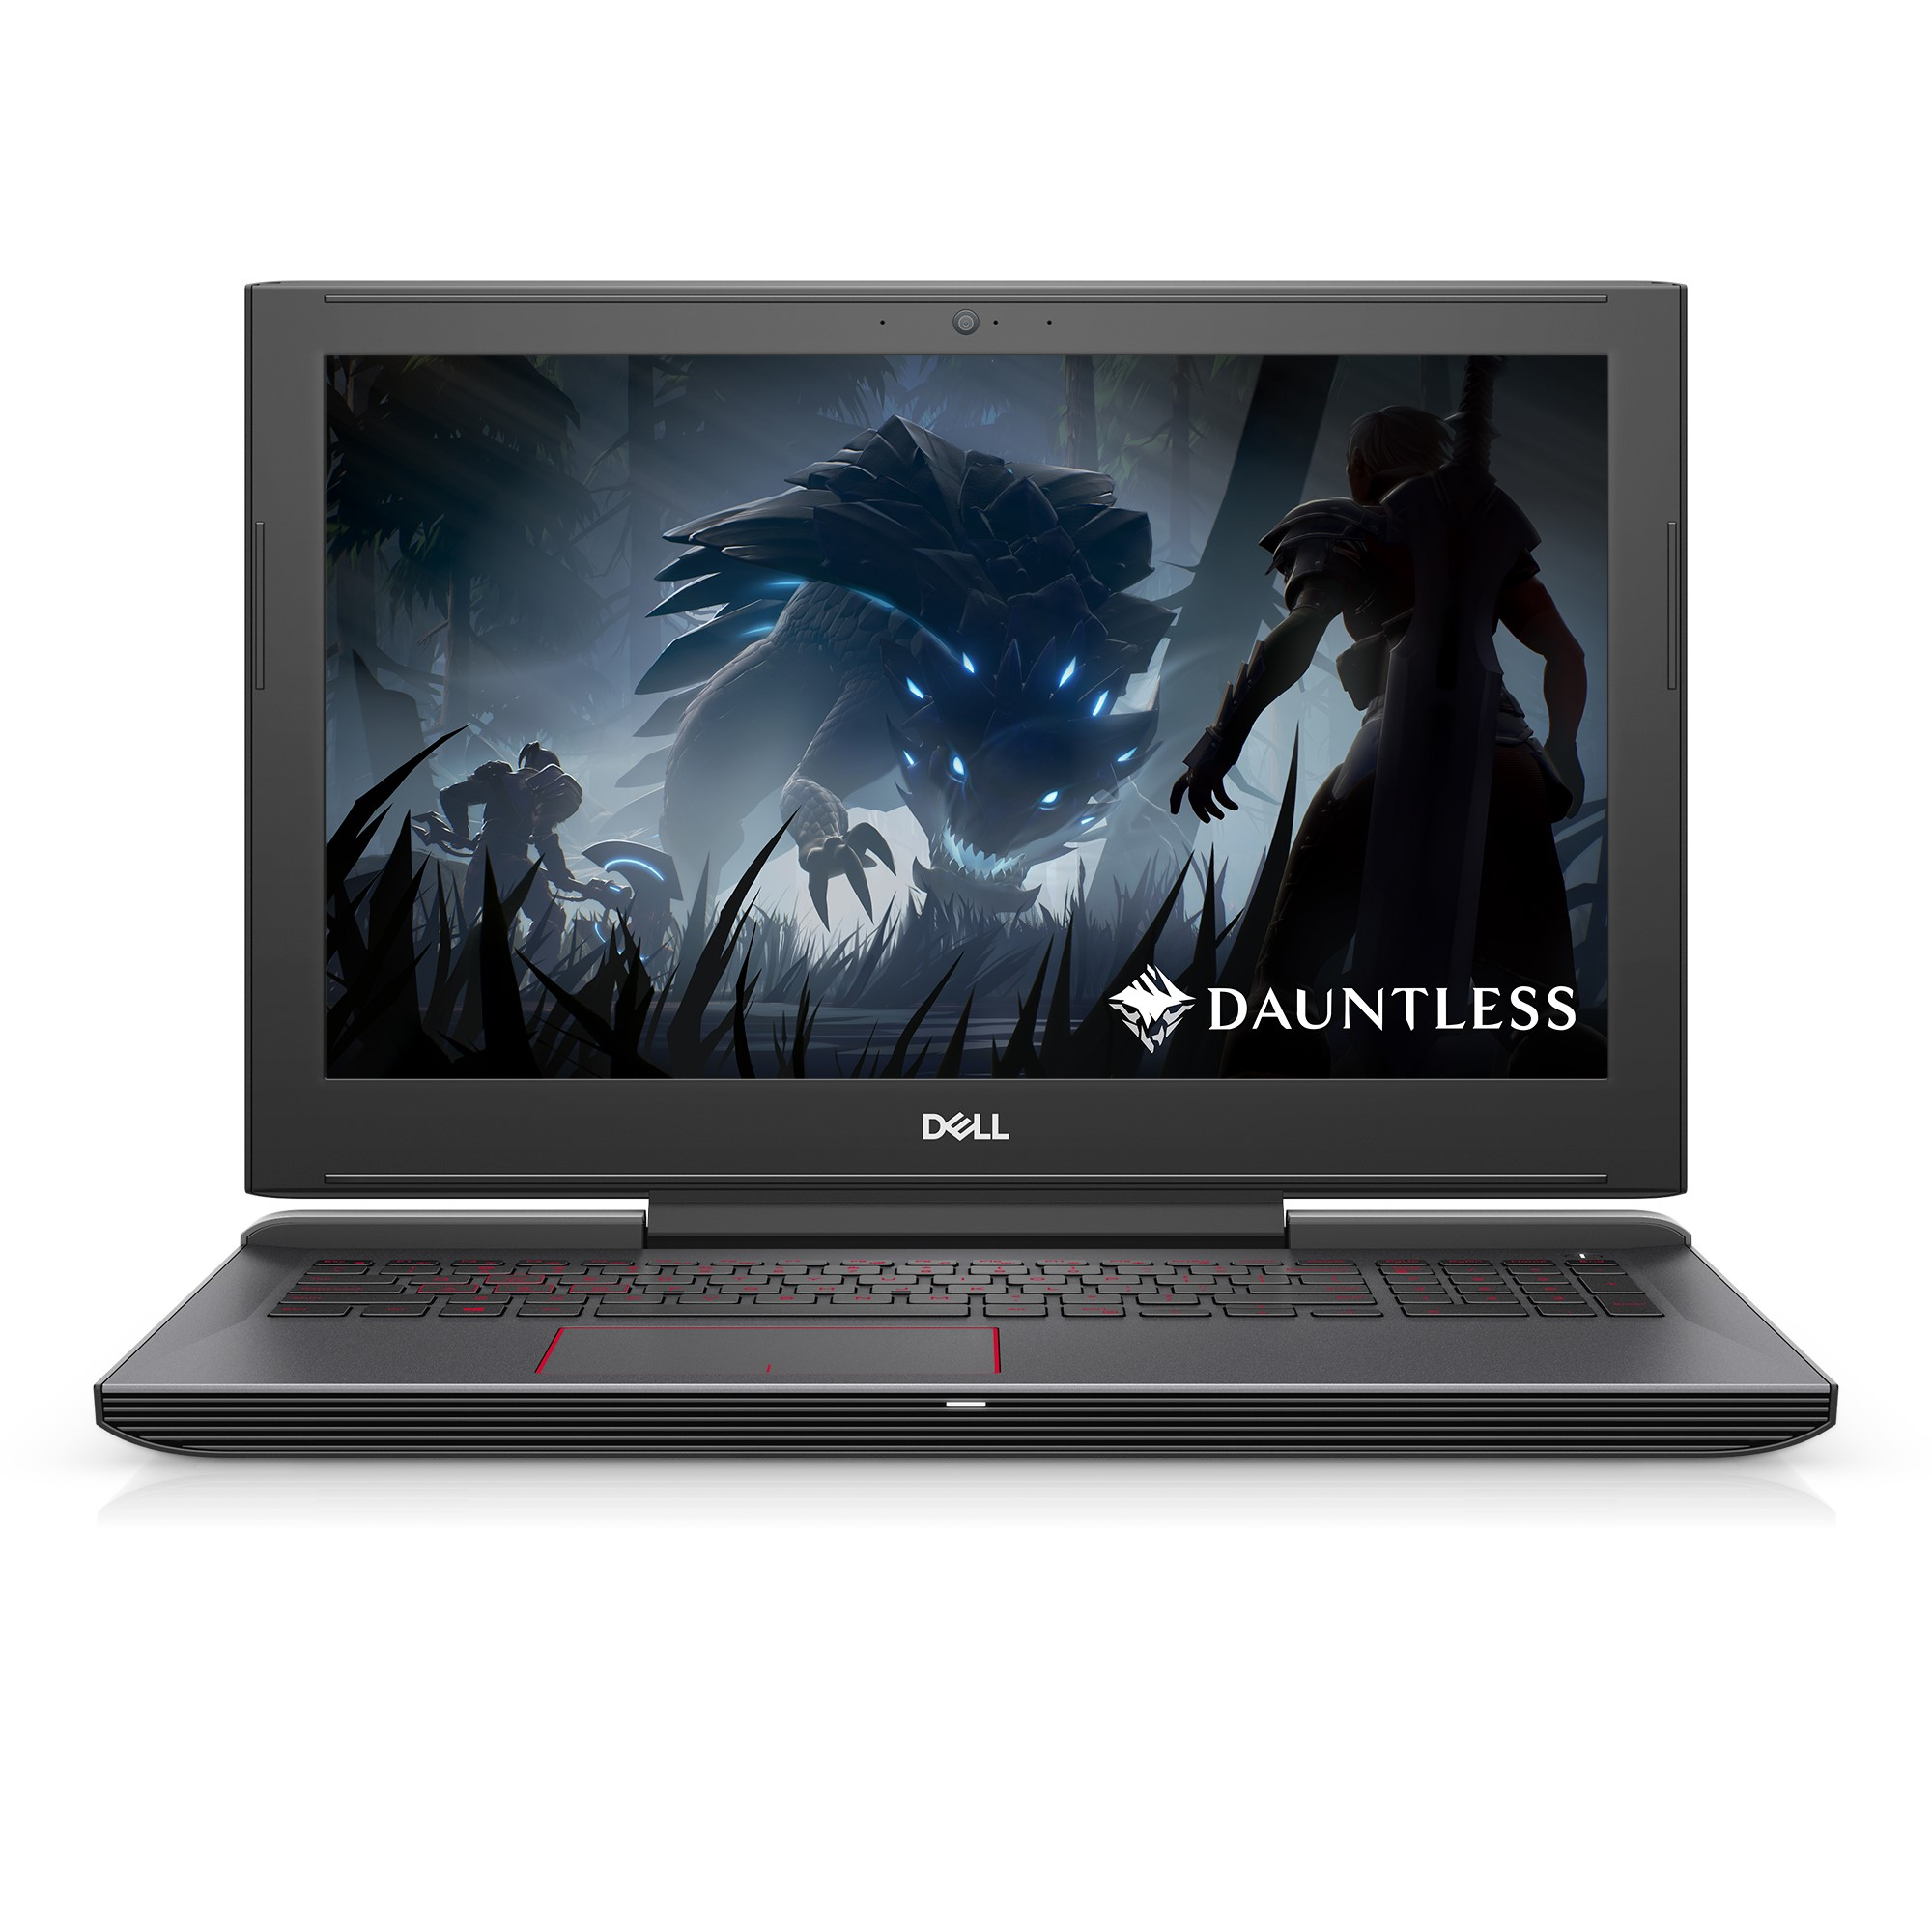 "Dell G5 Gaming Laptop 15.6"" Full HD, Intel Core i7-8750H, NVIDIA GeForce GTX 1050 Ti 4GB, 1TB HDD + 128GB... by Dell"